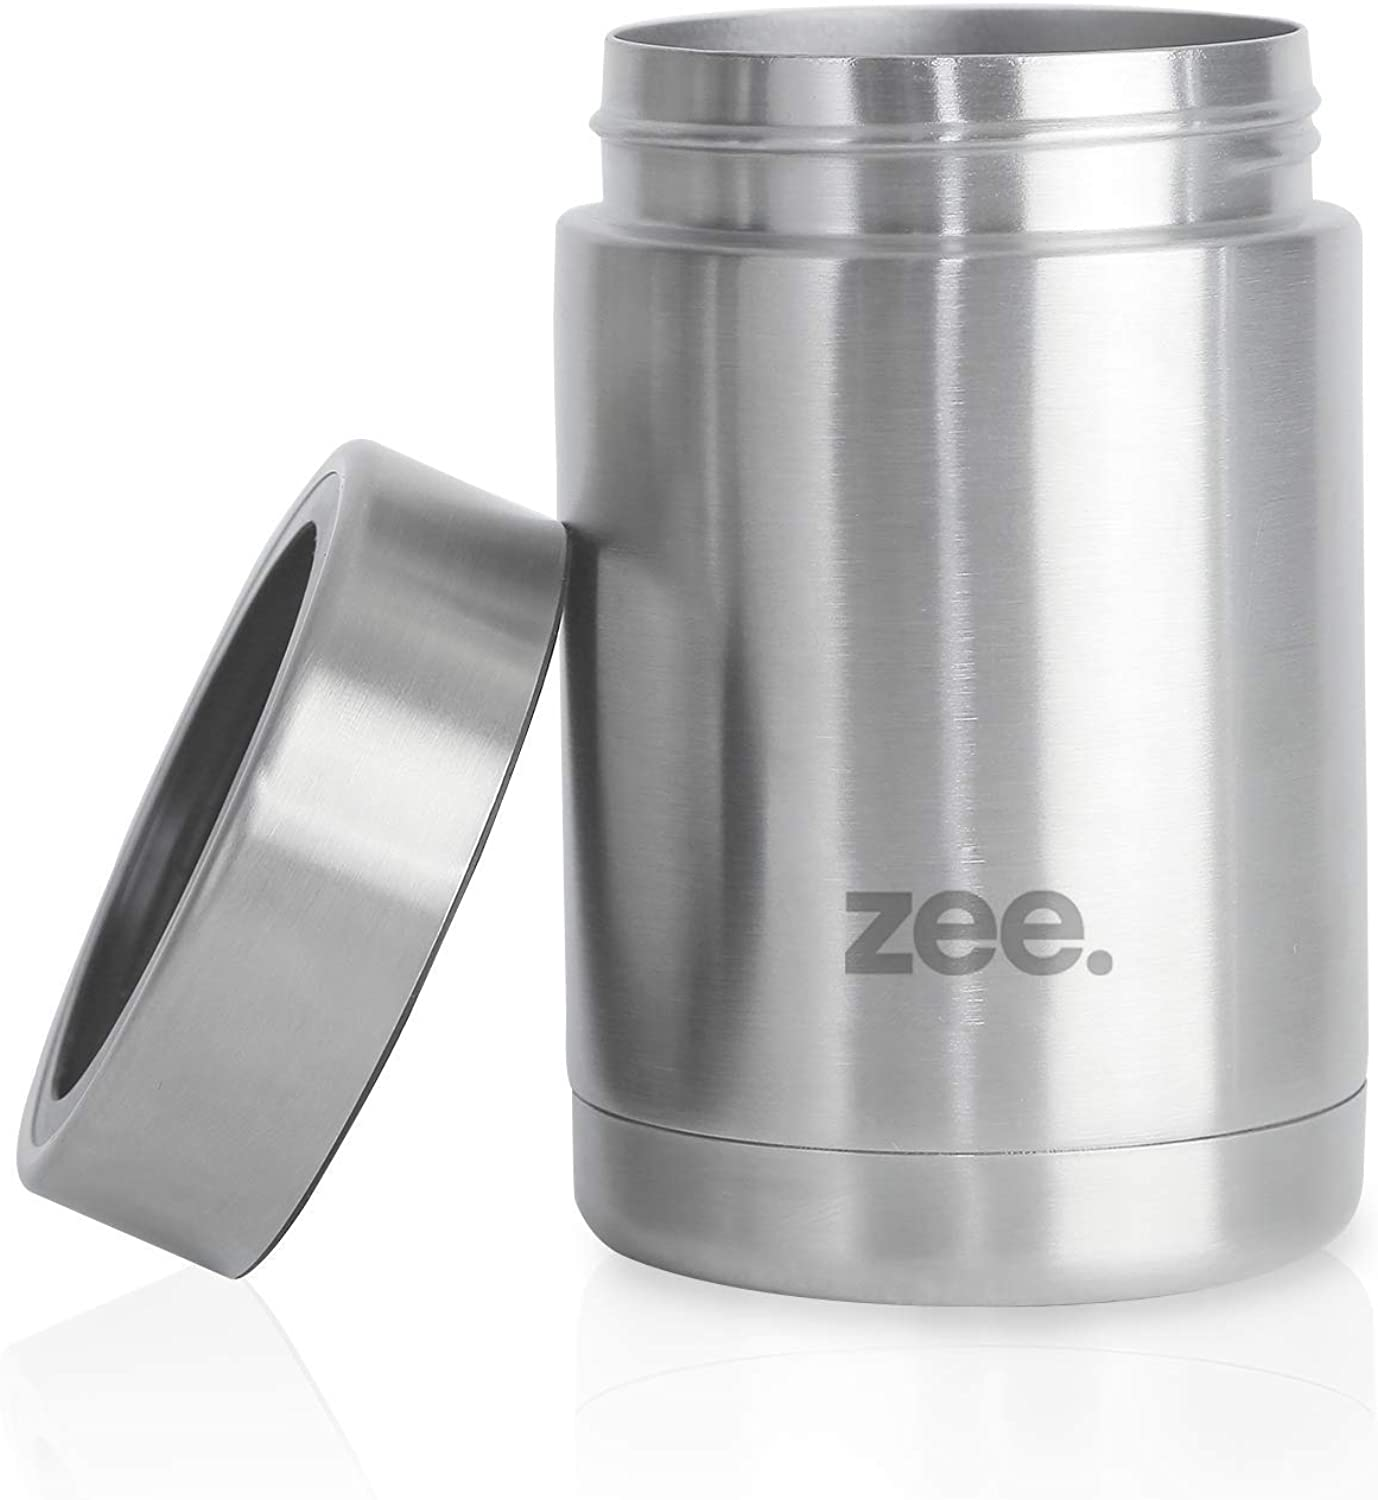 Zee. Can Cooler & Drink Insulator - Double-Walled Stainless Steel Insulated Can Koozie - Hot & Cold Beverages - Non-Slip, Anti-Splash, Sweat-Proof